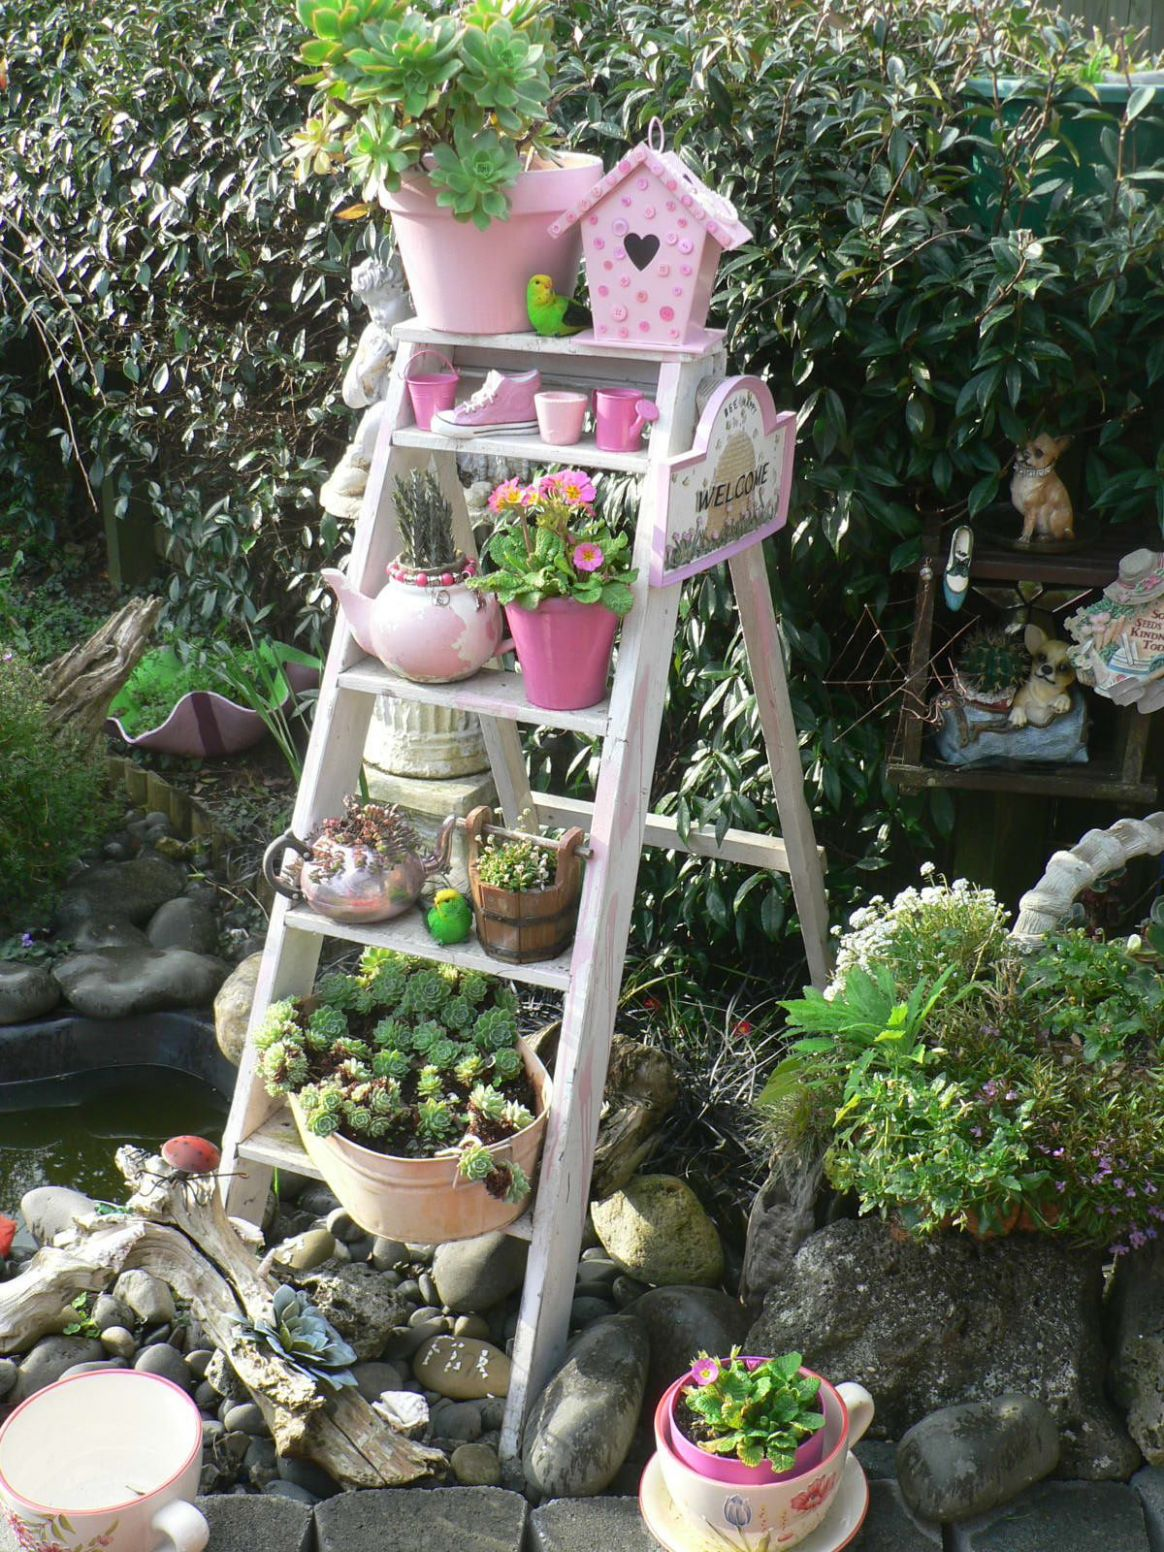 8+ Impressive Ideas to Make Wooden Ladder Garden | Garden ladder ..